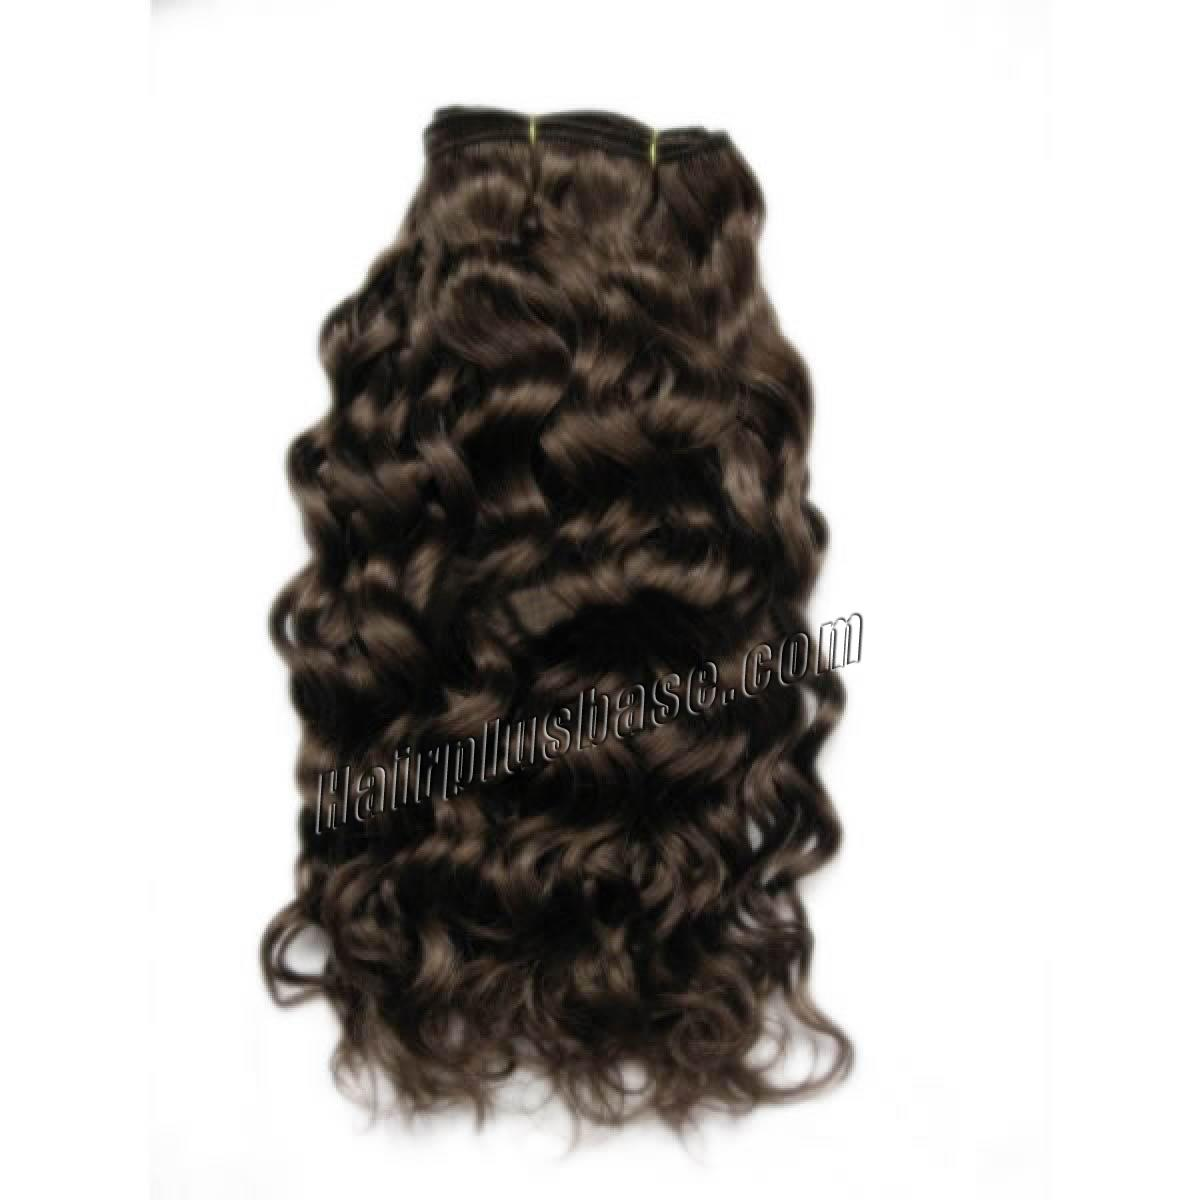 14 Inch #4 Medium Brown Curly Indian Remy Hair Wefts no 1